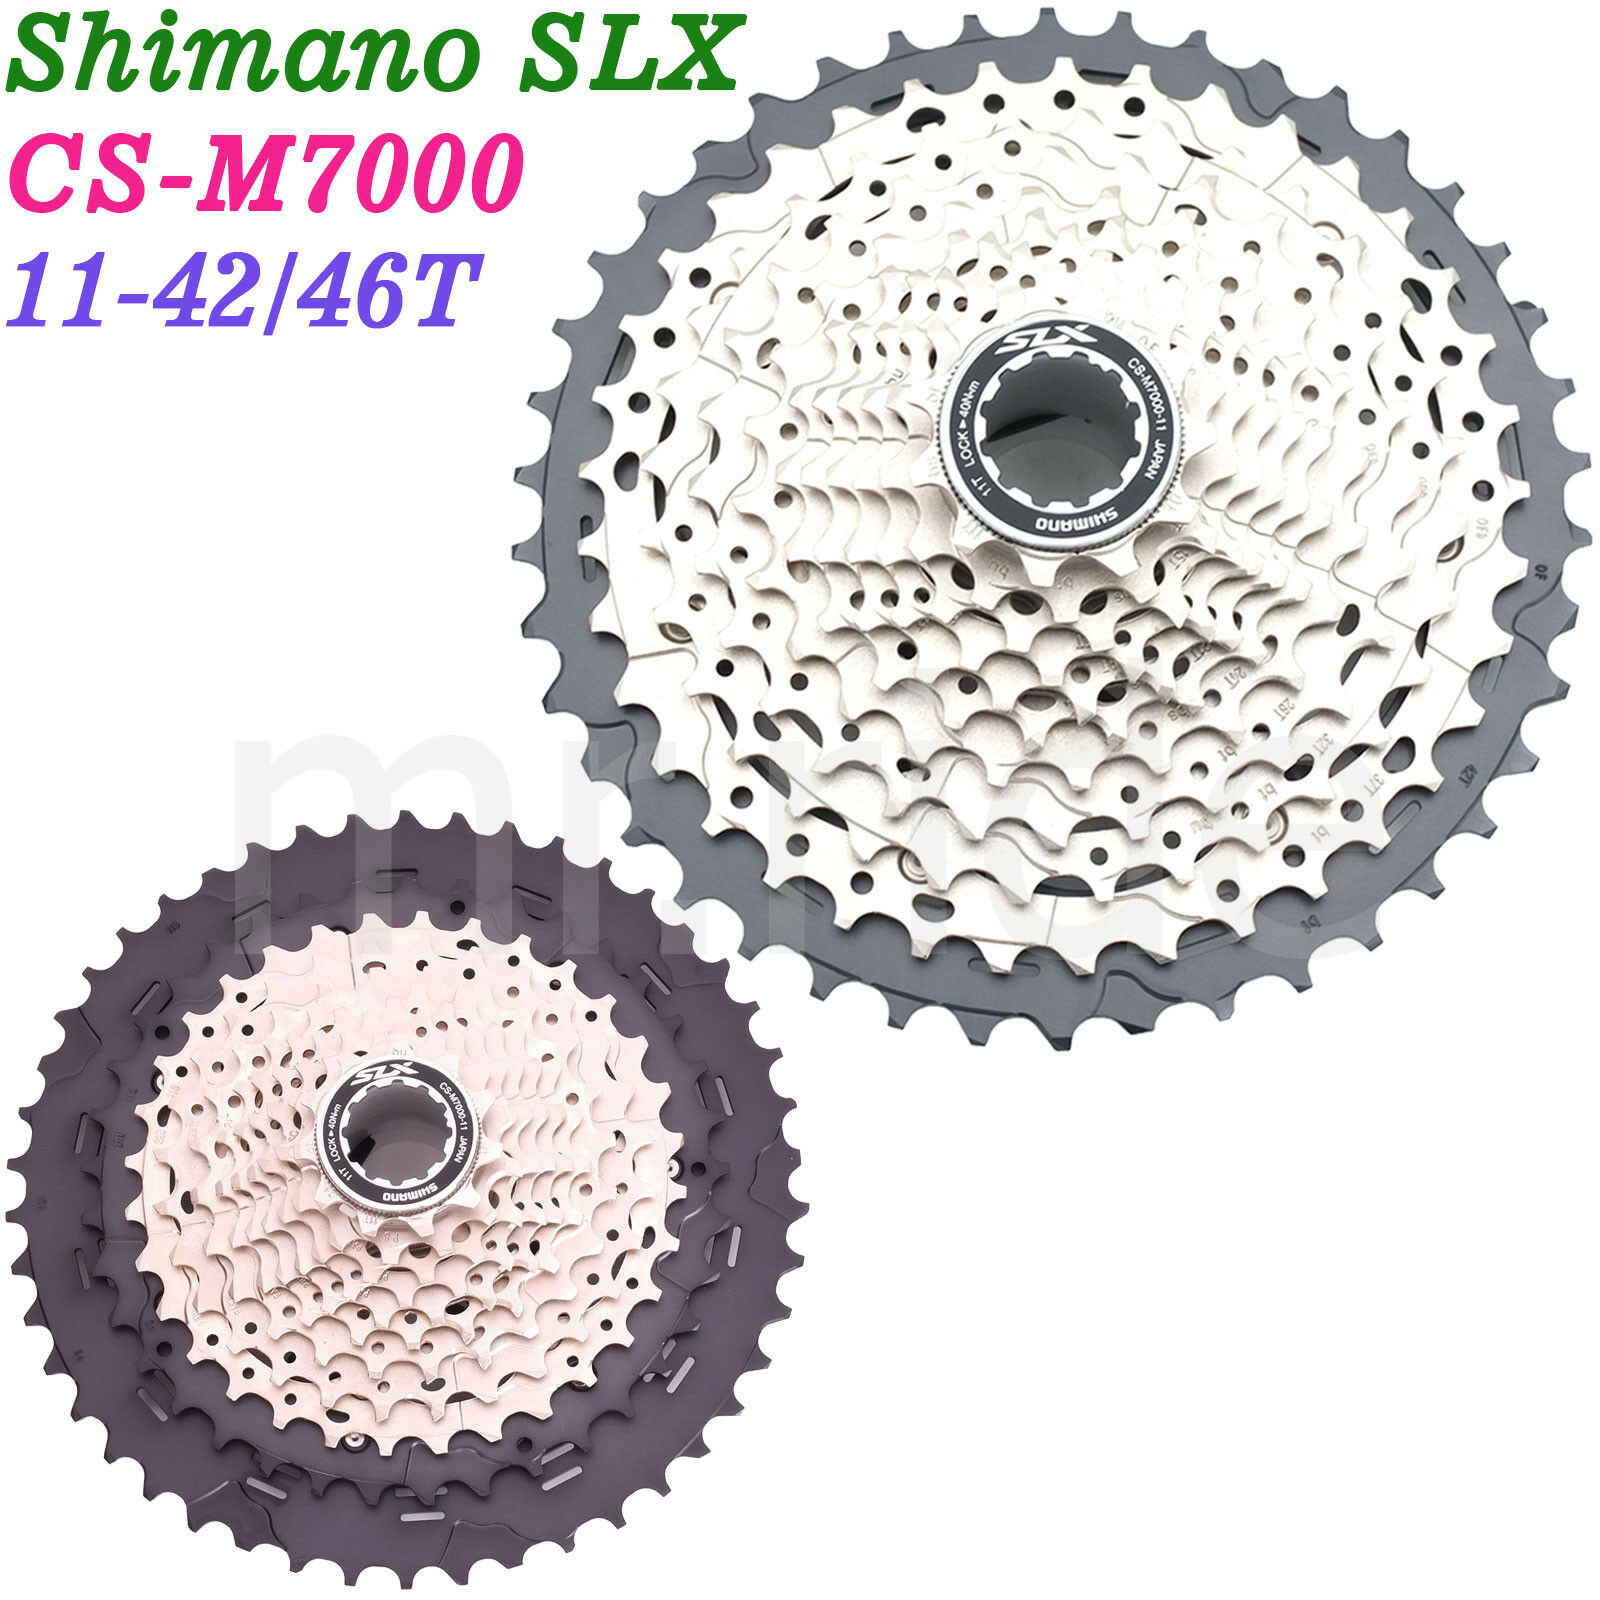 Shimano SLX Mountain Bike Cassette CS-M7000 11-Speed 11-42 11-46T